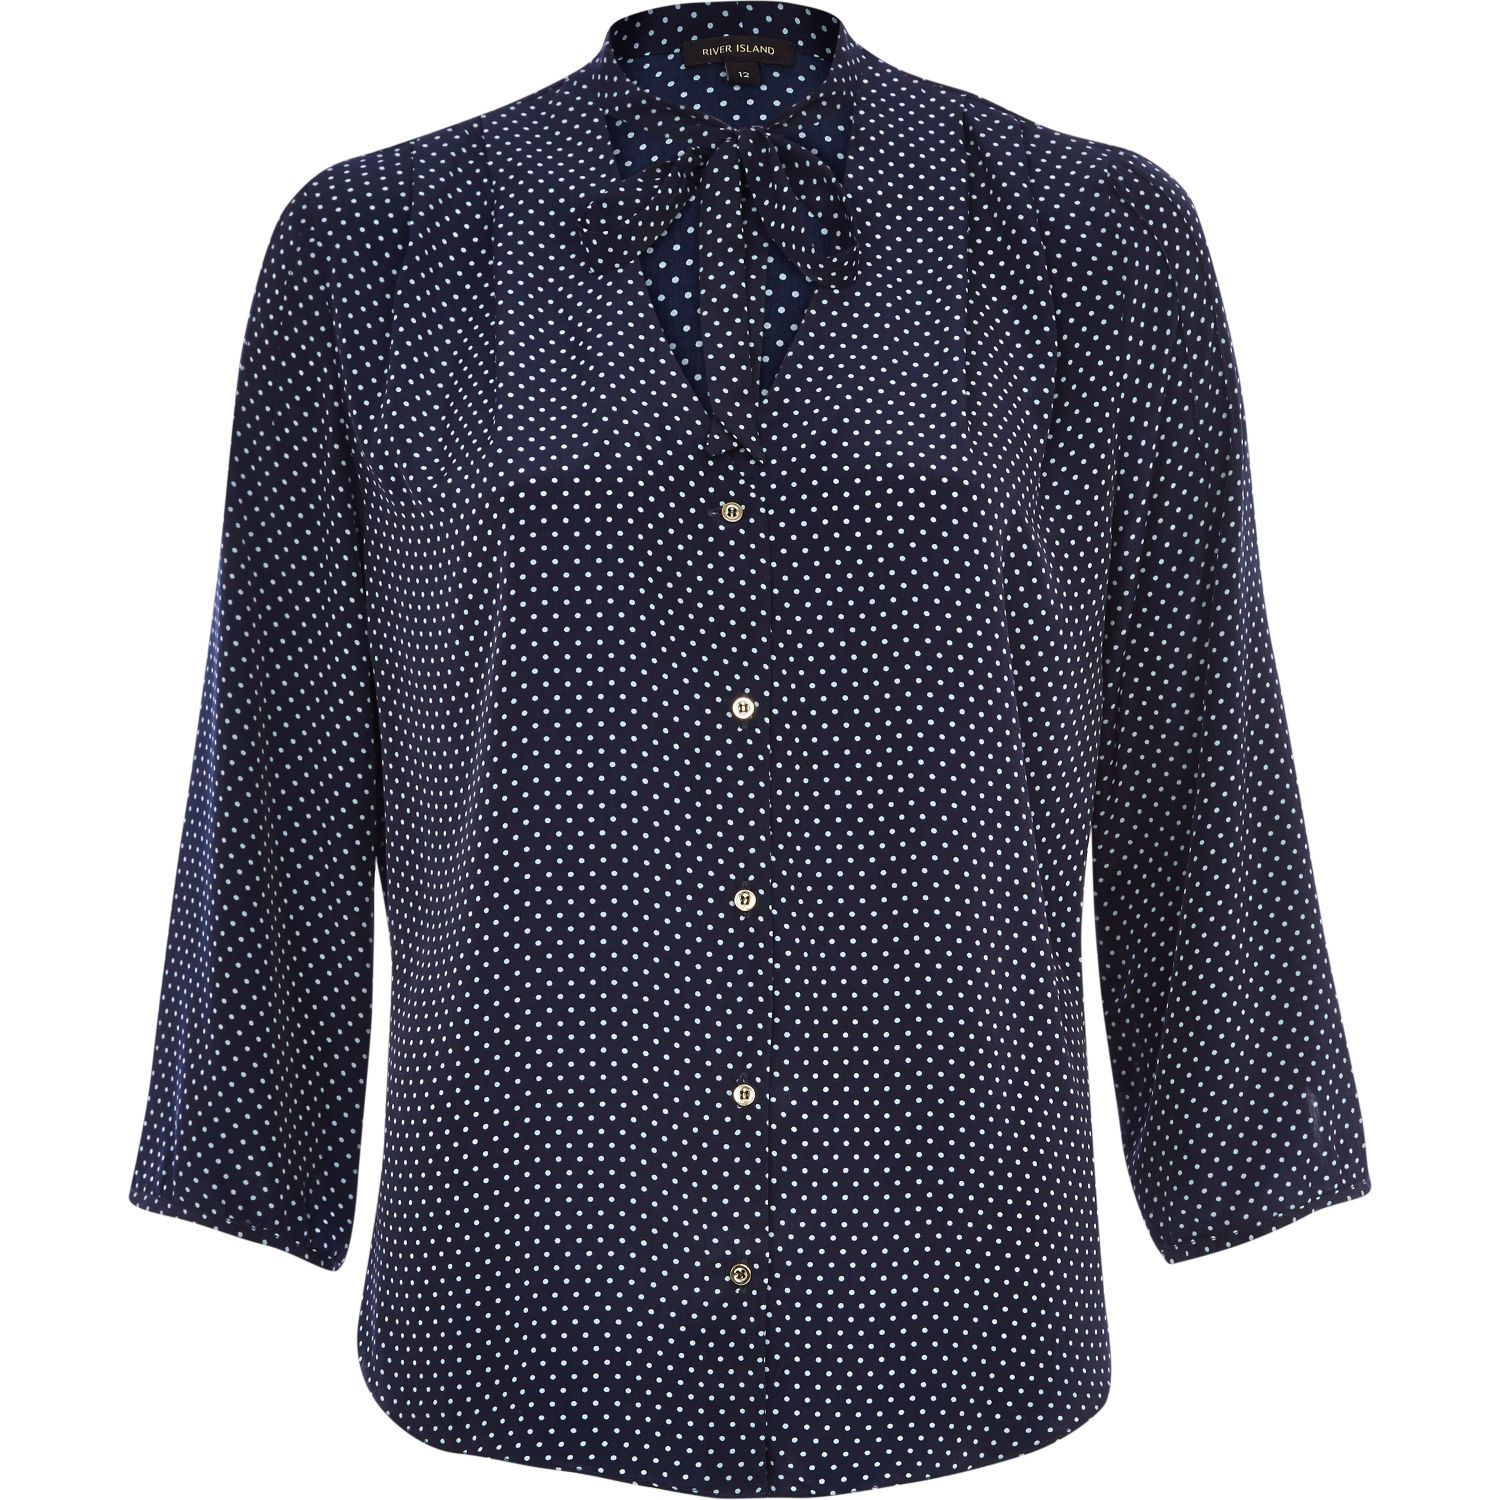 River Island Polka Dot Blouse